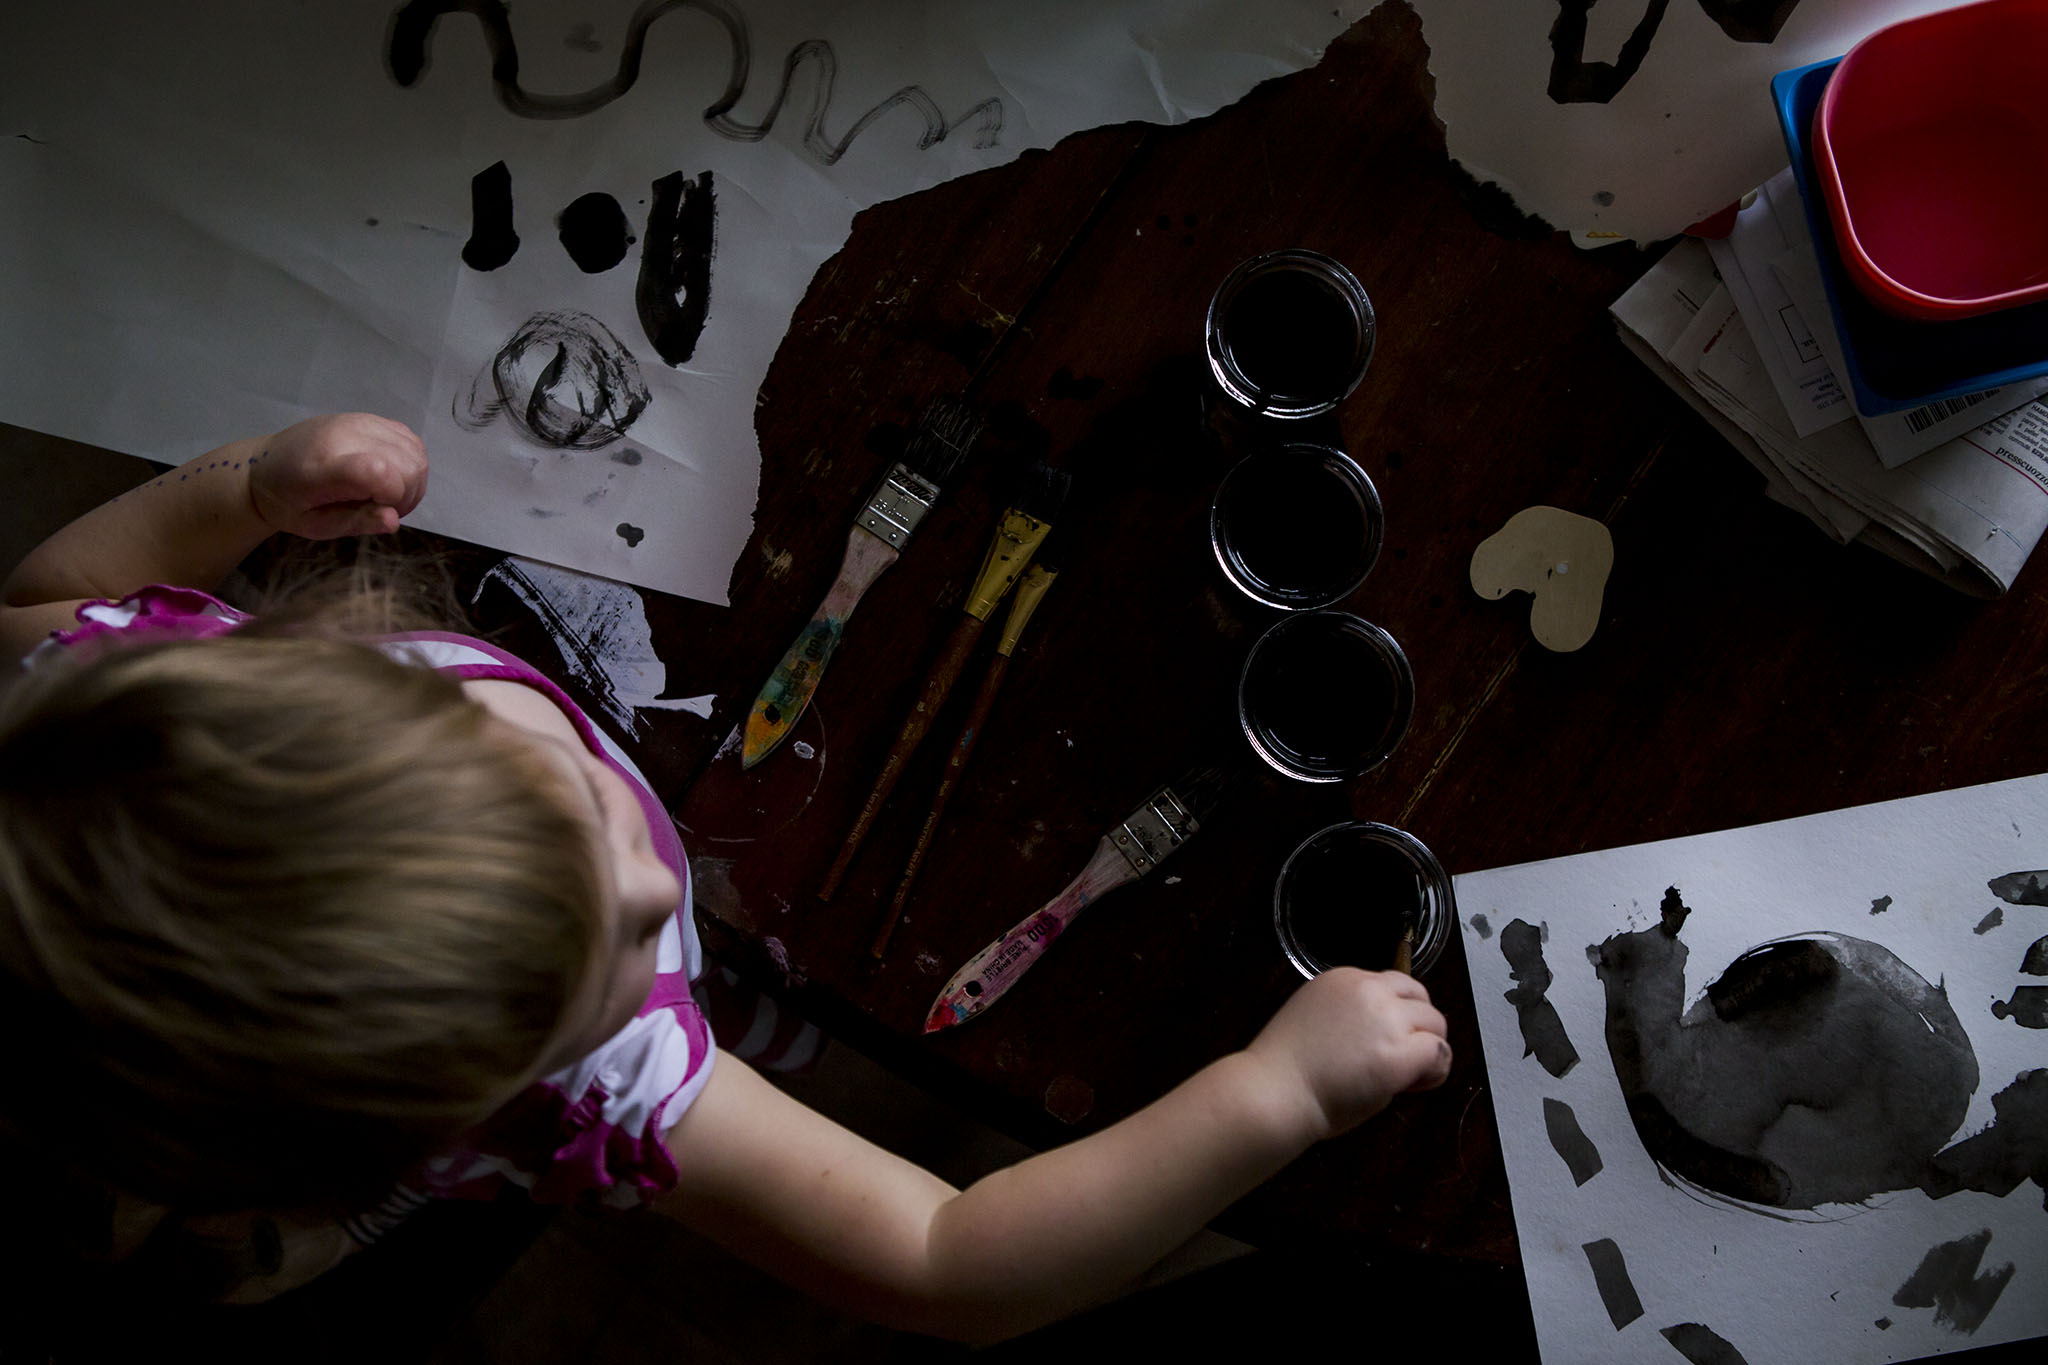 authentic, candid photograph of connecticut child doing art with ink and paintbrushes.